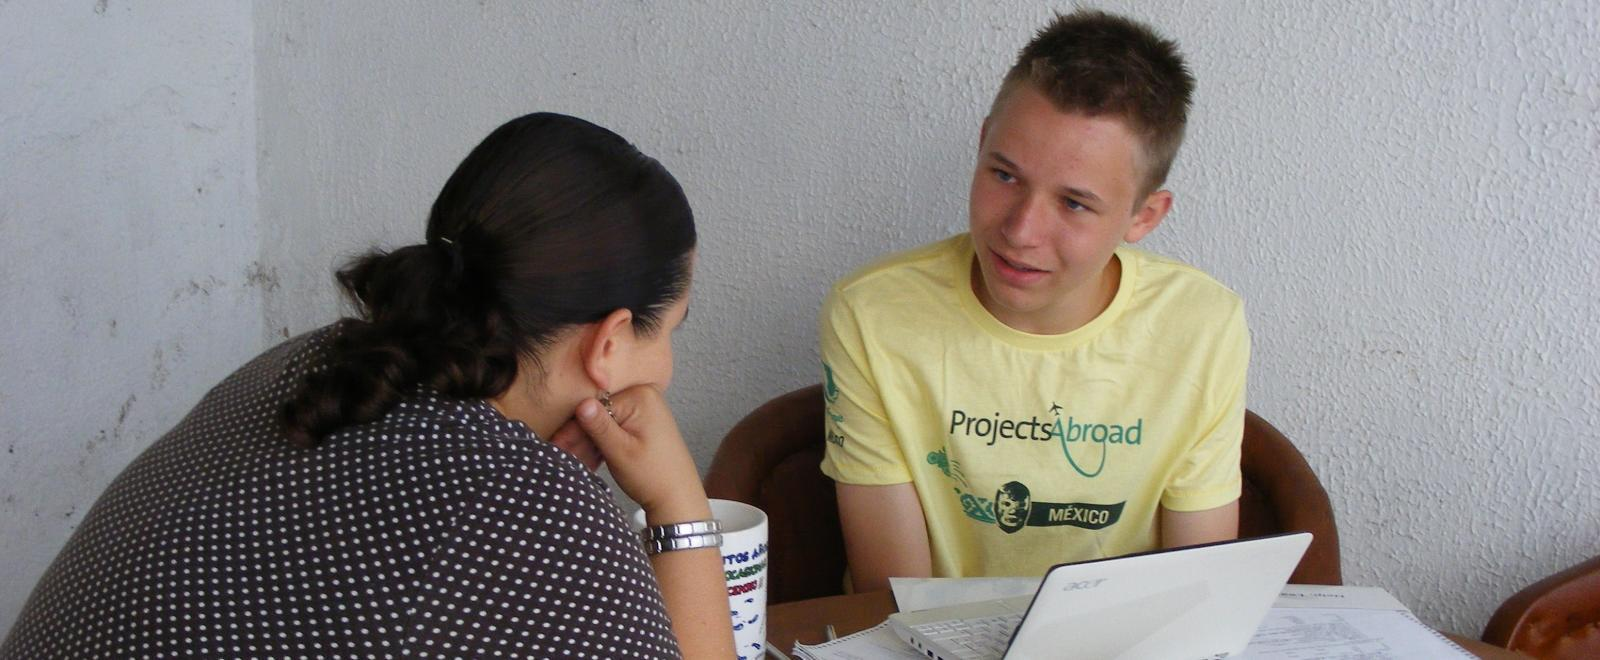 A young volunteer receives a Spanish language lesson as part of his induction at the Projects Abroad office.